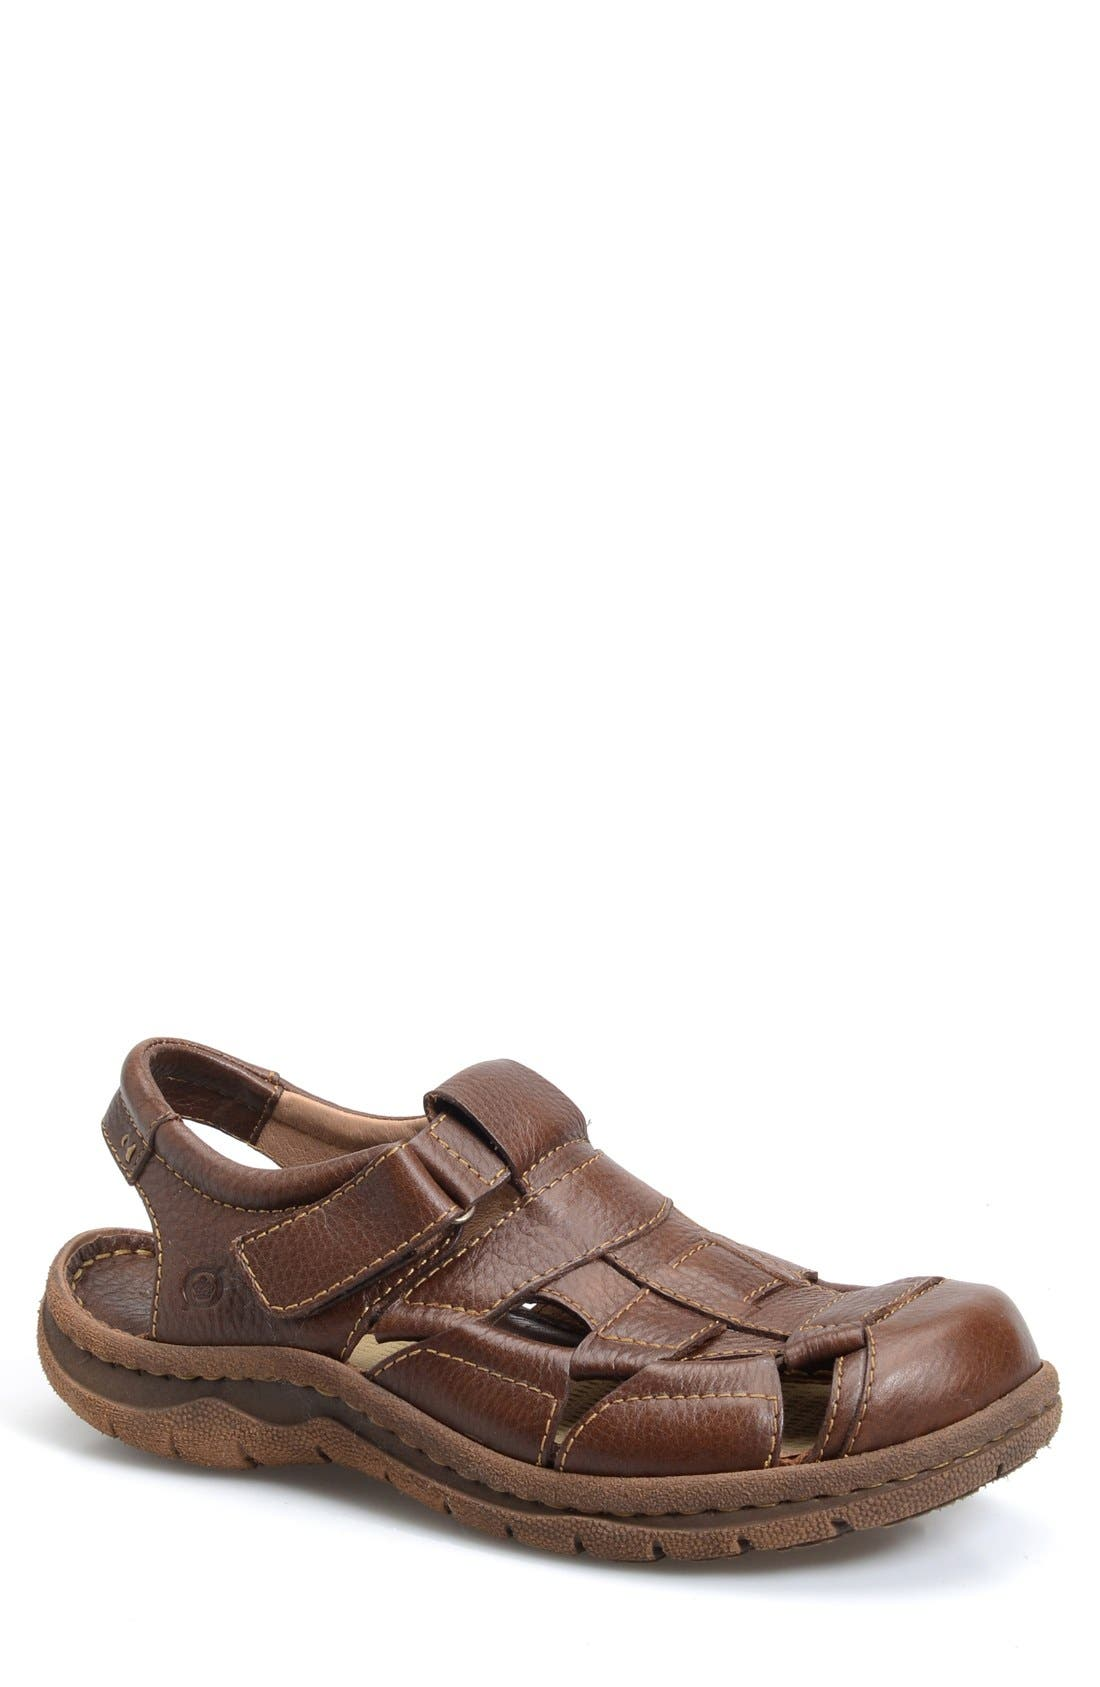 'Cabot II' Sandal,                             Main thumbnail 1, color,                             Brown Leather